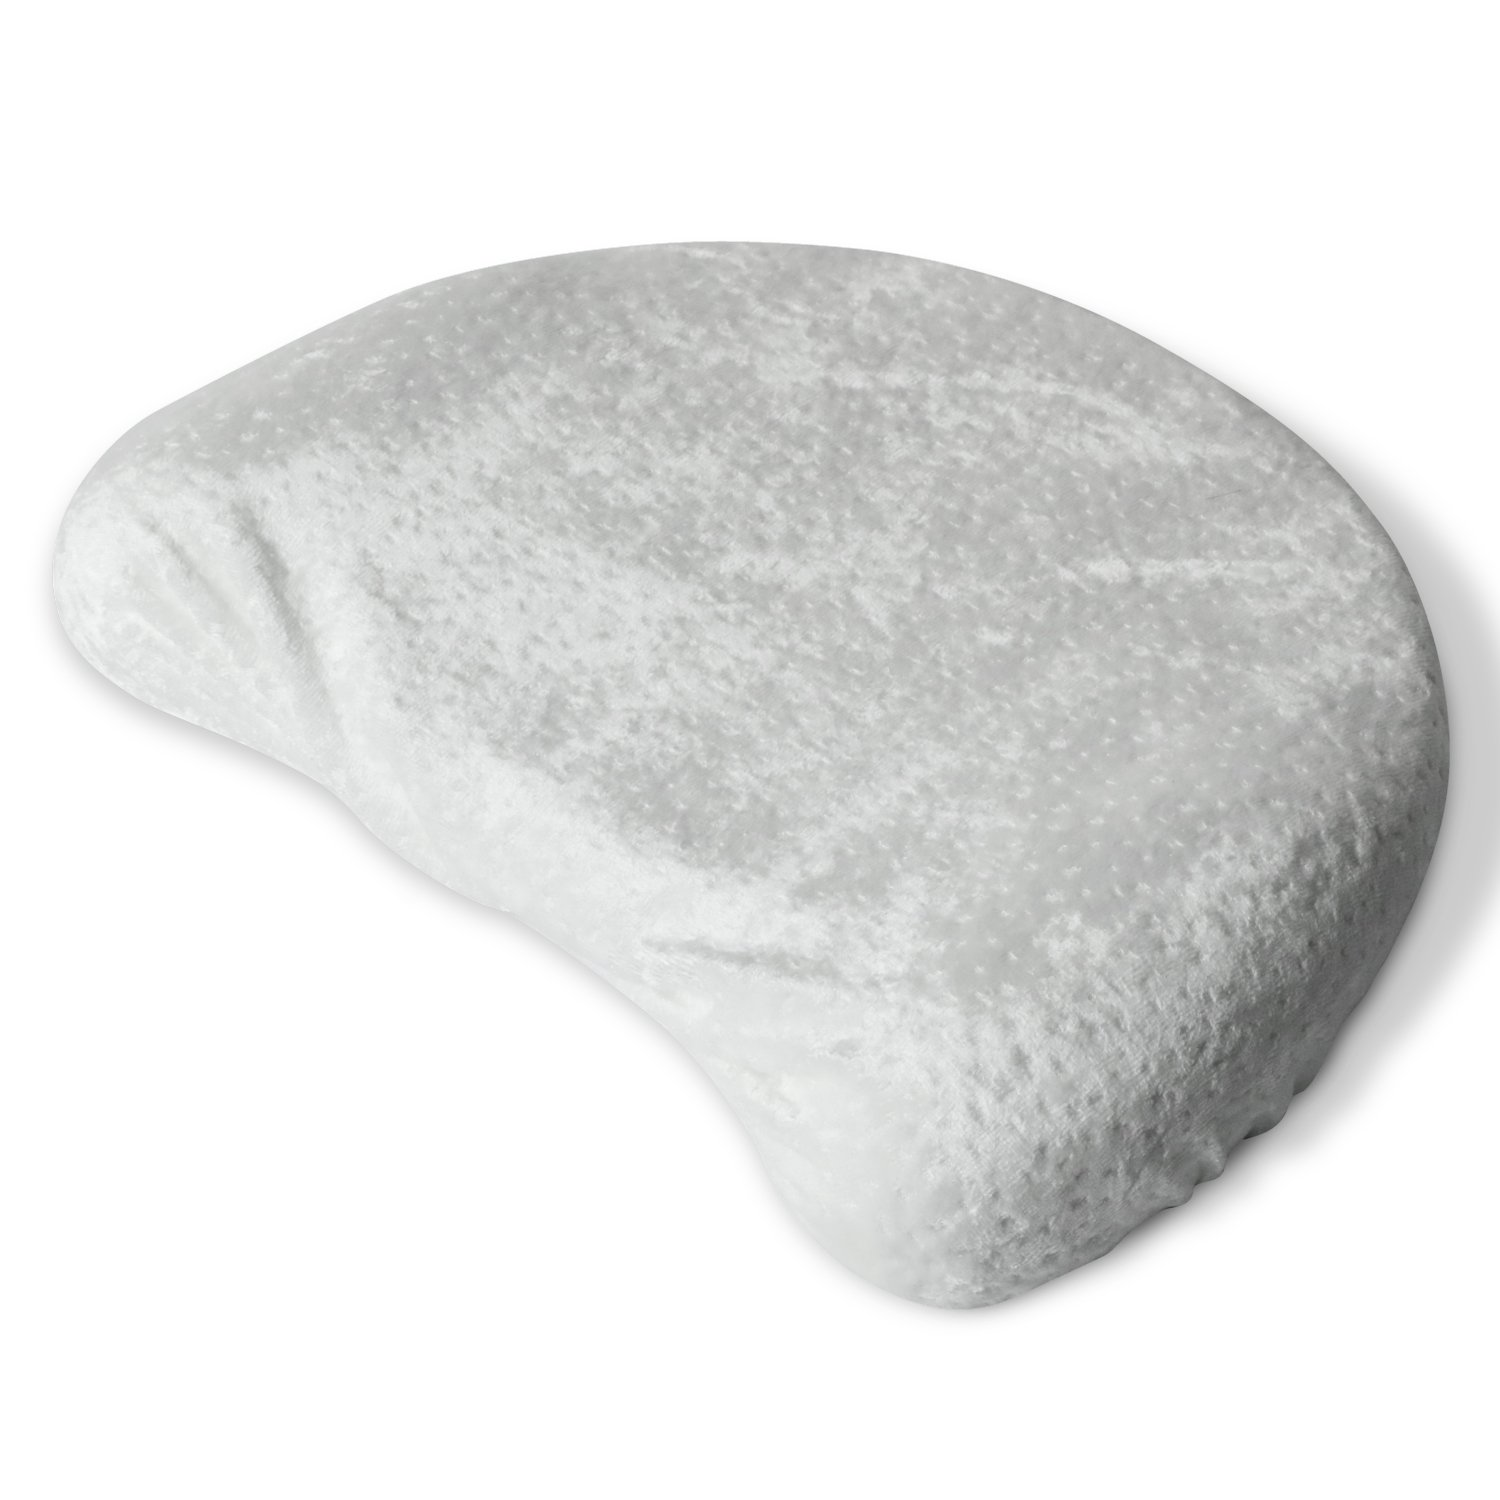 Nurtrco Baby Pillow + Bamboo Pillow Case. Ultra Soft & Comfortable For Infant & Newborn Boys & Girls. Memory Foam Helps Prevent Flat Head Syndrome (Plagiocephaly) And Keep Head Round.